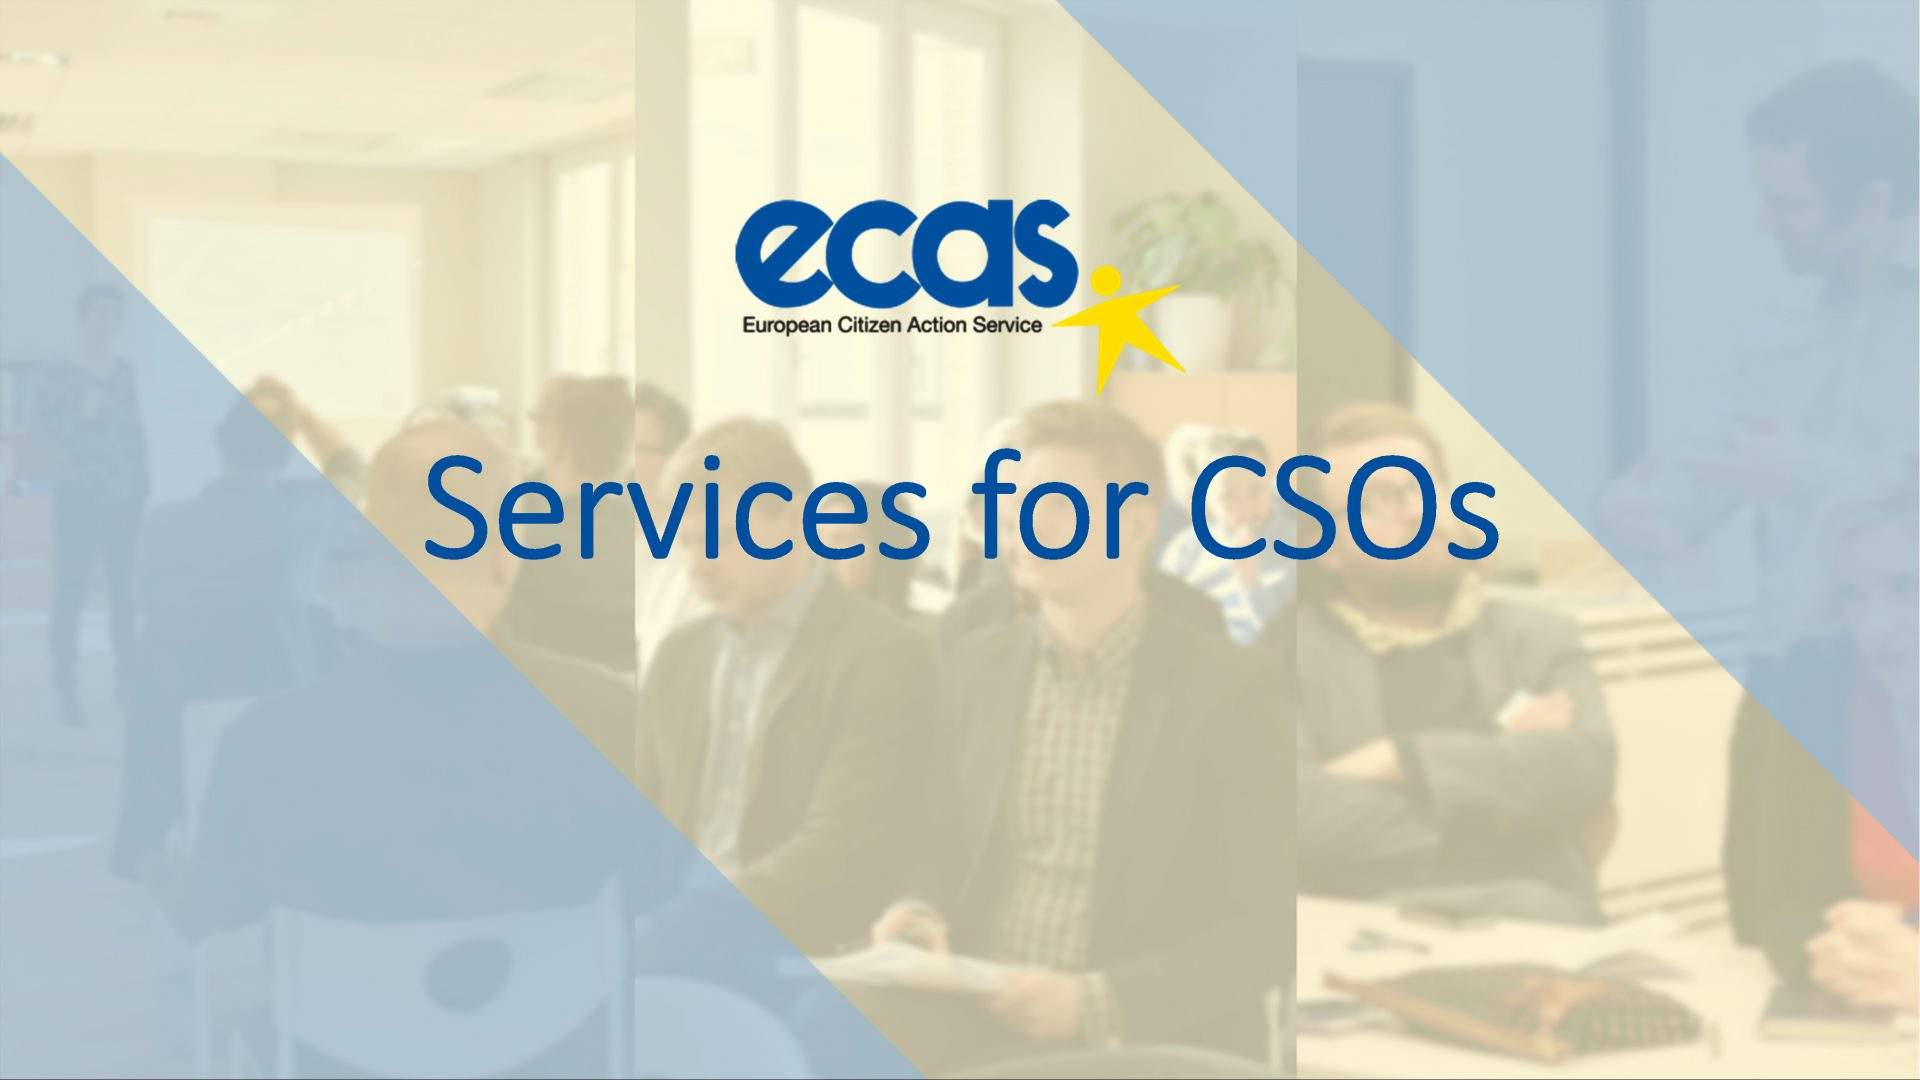 Services for Civil Society Organisations - ECAS